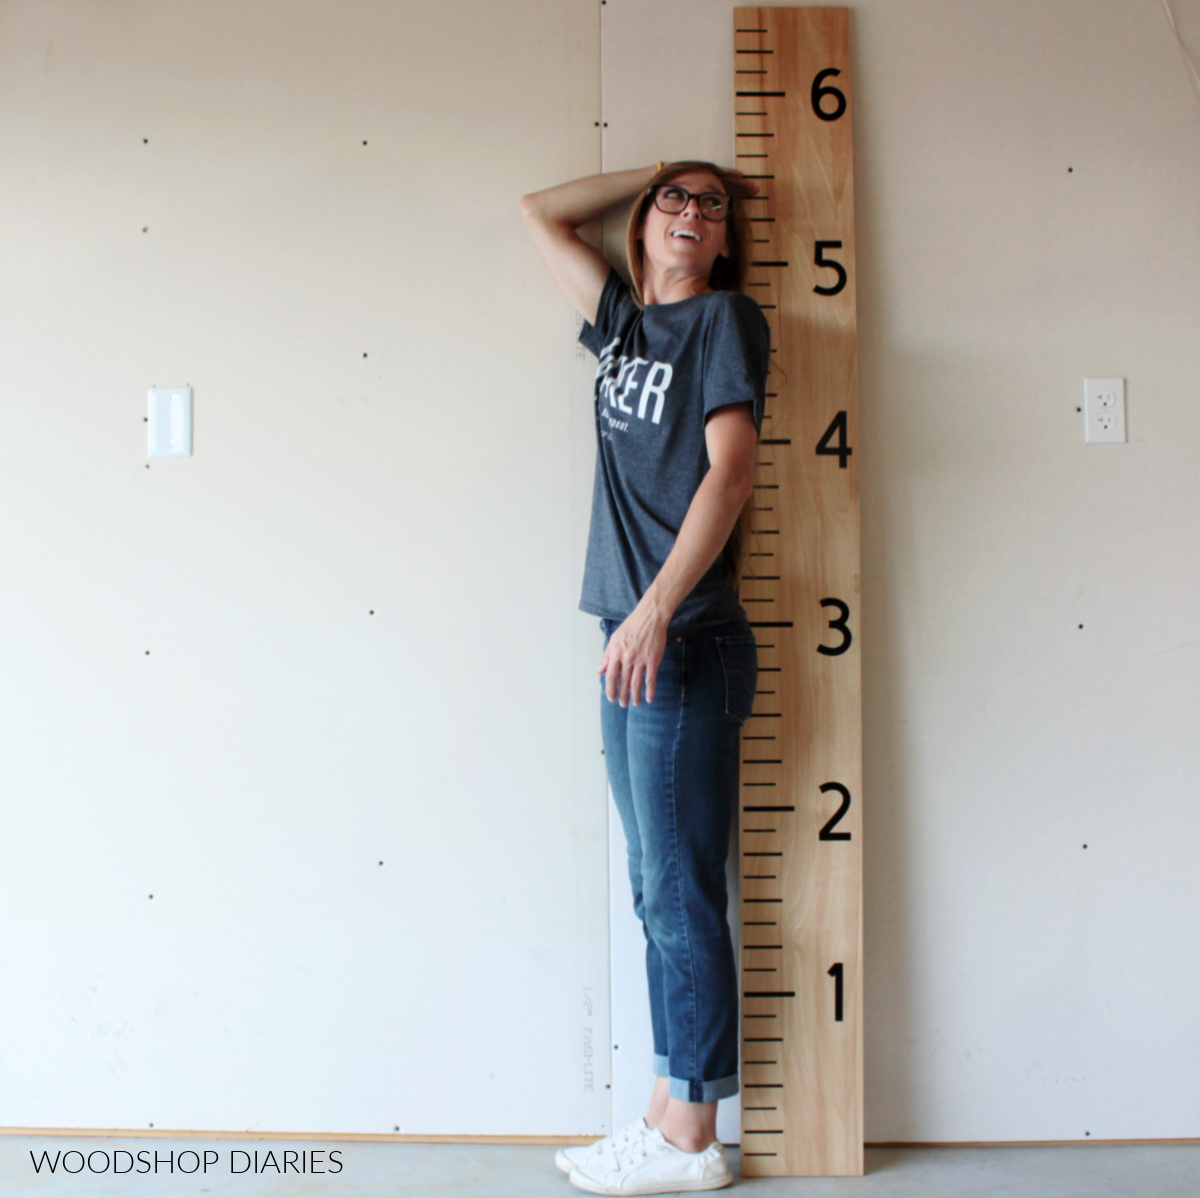 Shara Woodshop Diaries standing next to life size giant ruler board growth chart checking her height